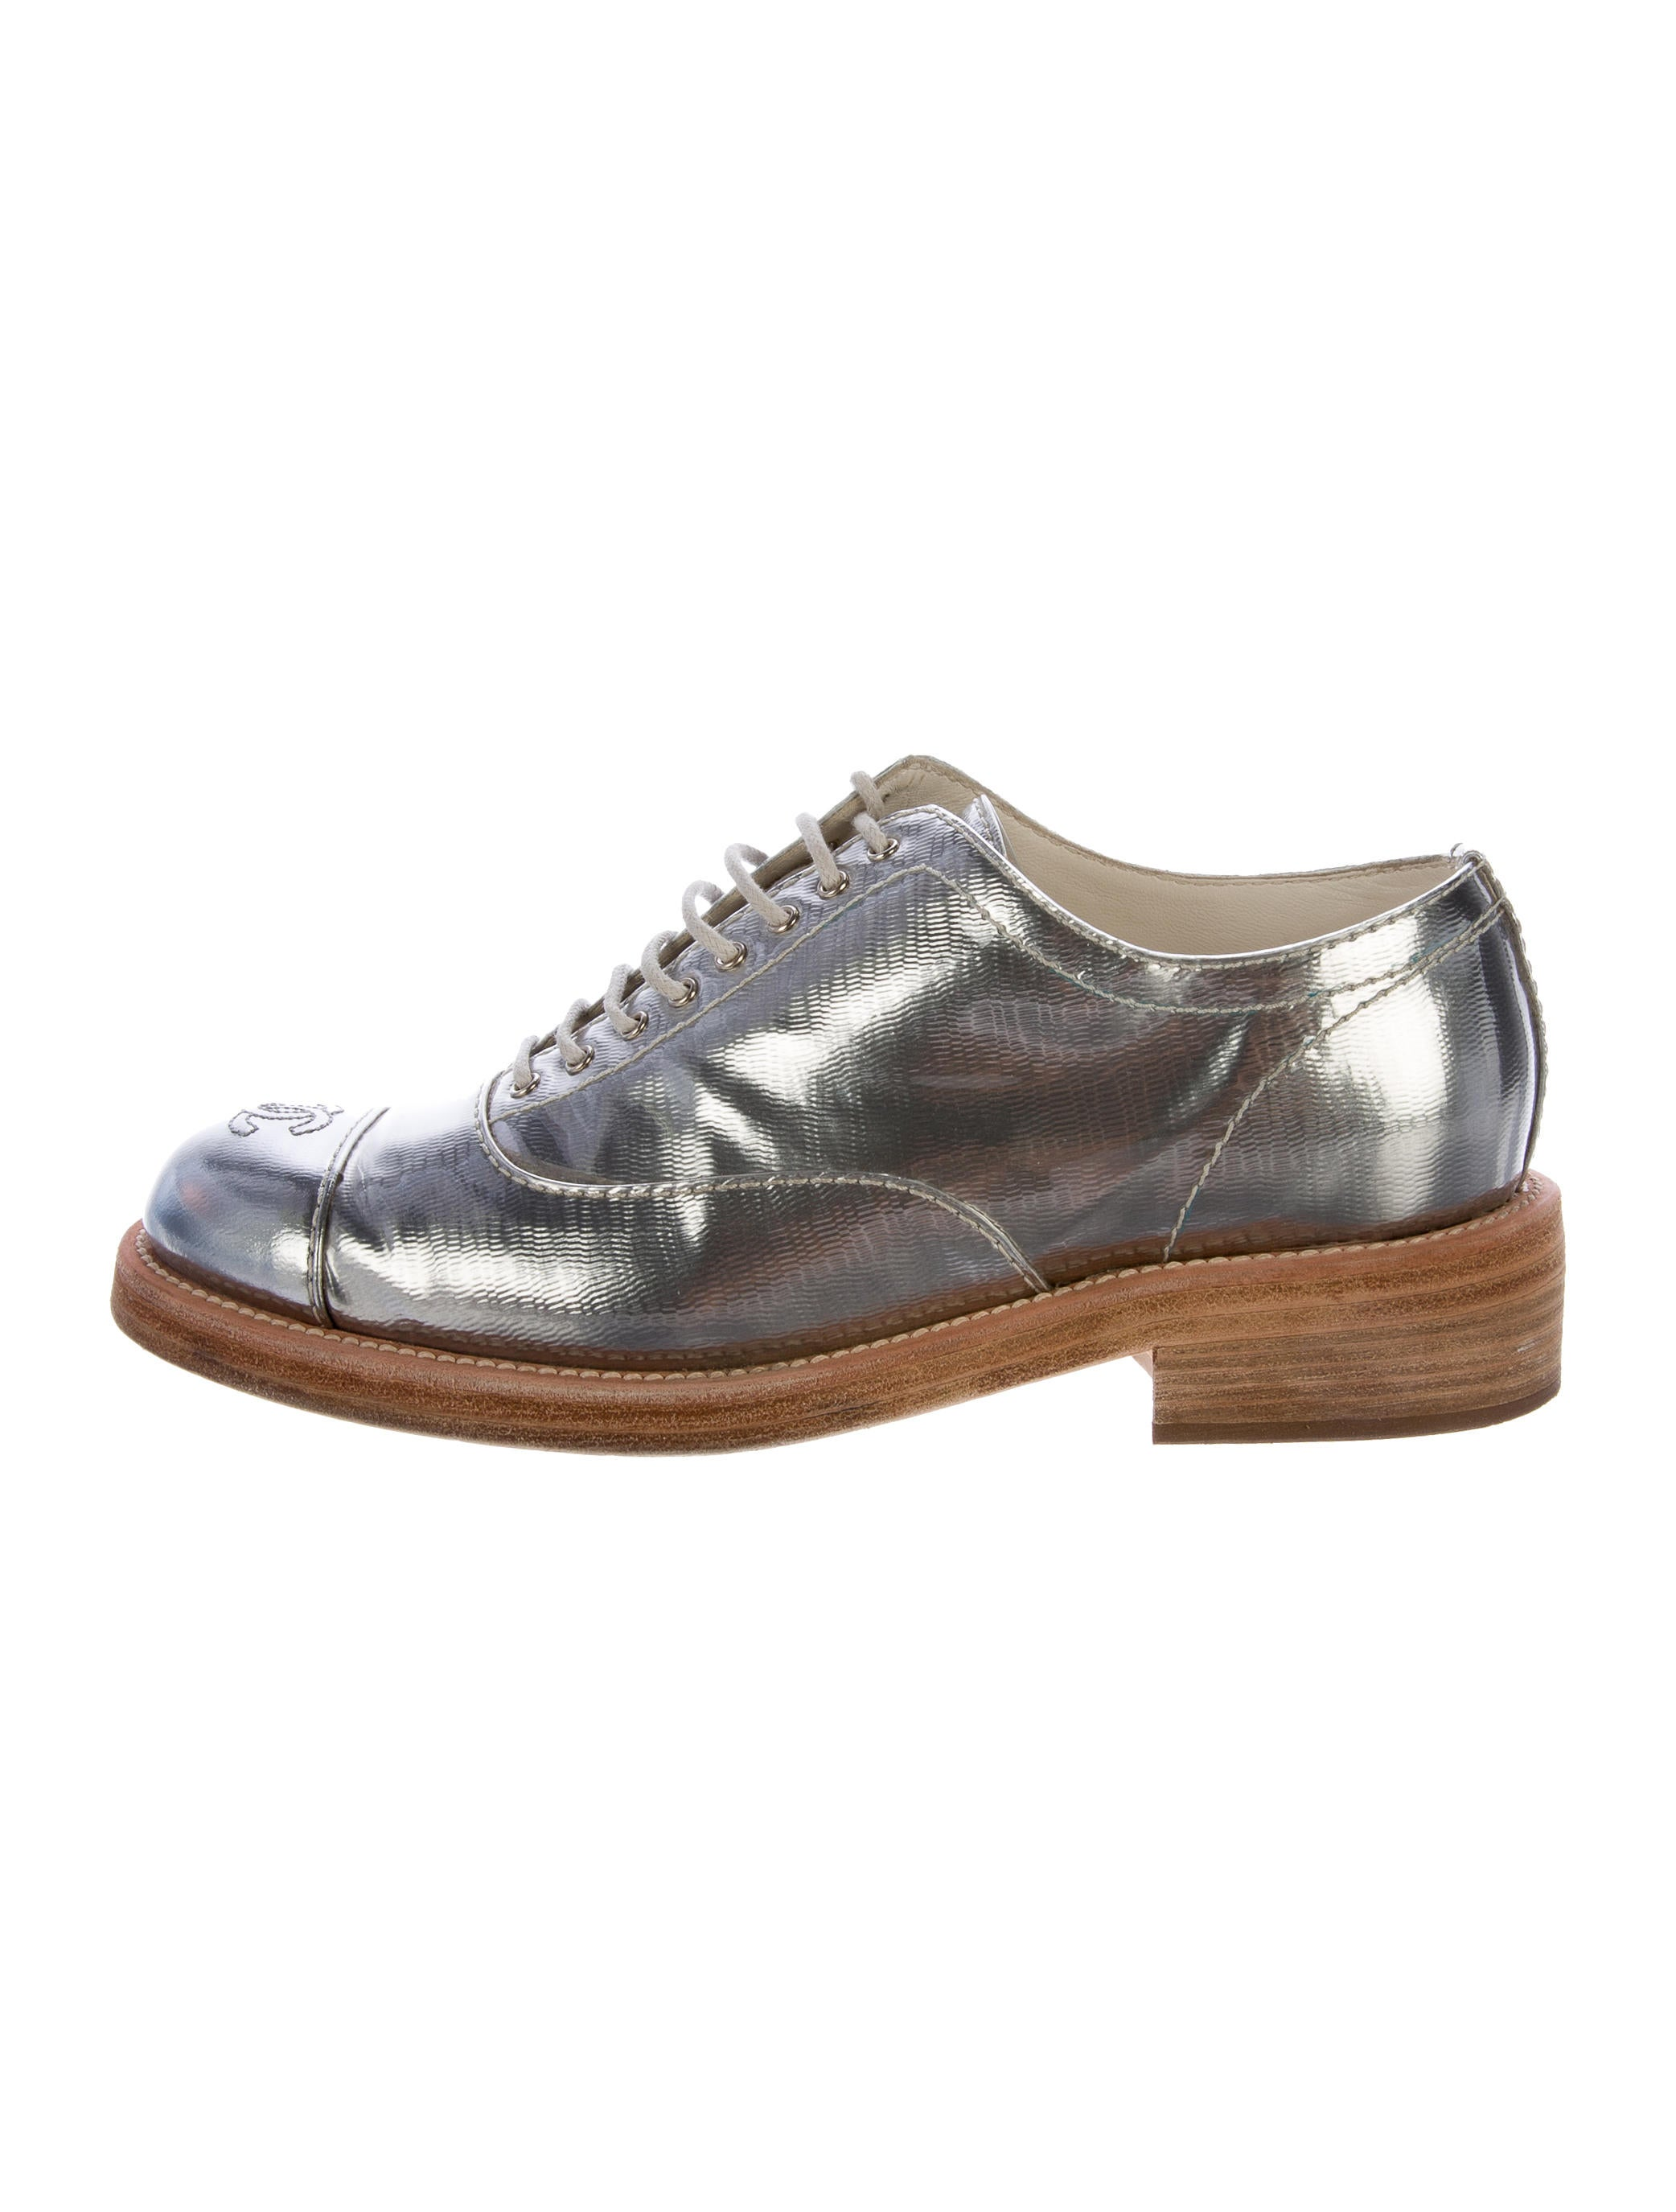 Chanel Metallic Cc Oxfords Shoes Cha164589 The Realreal